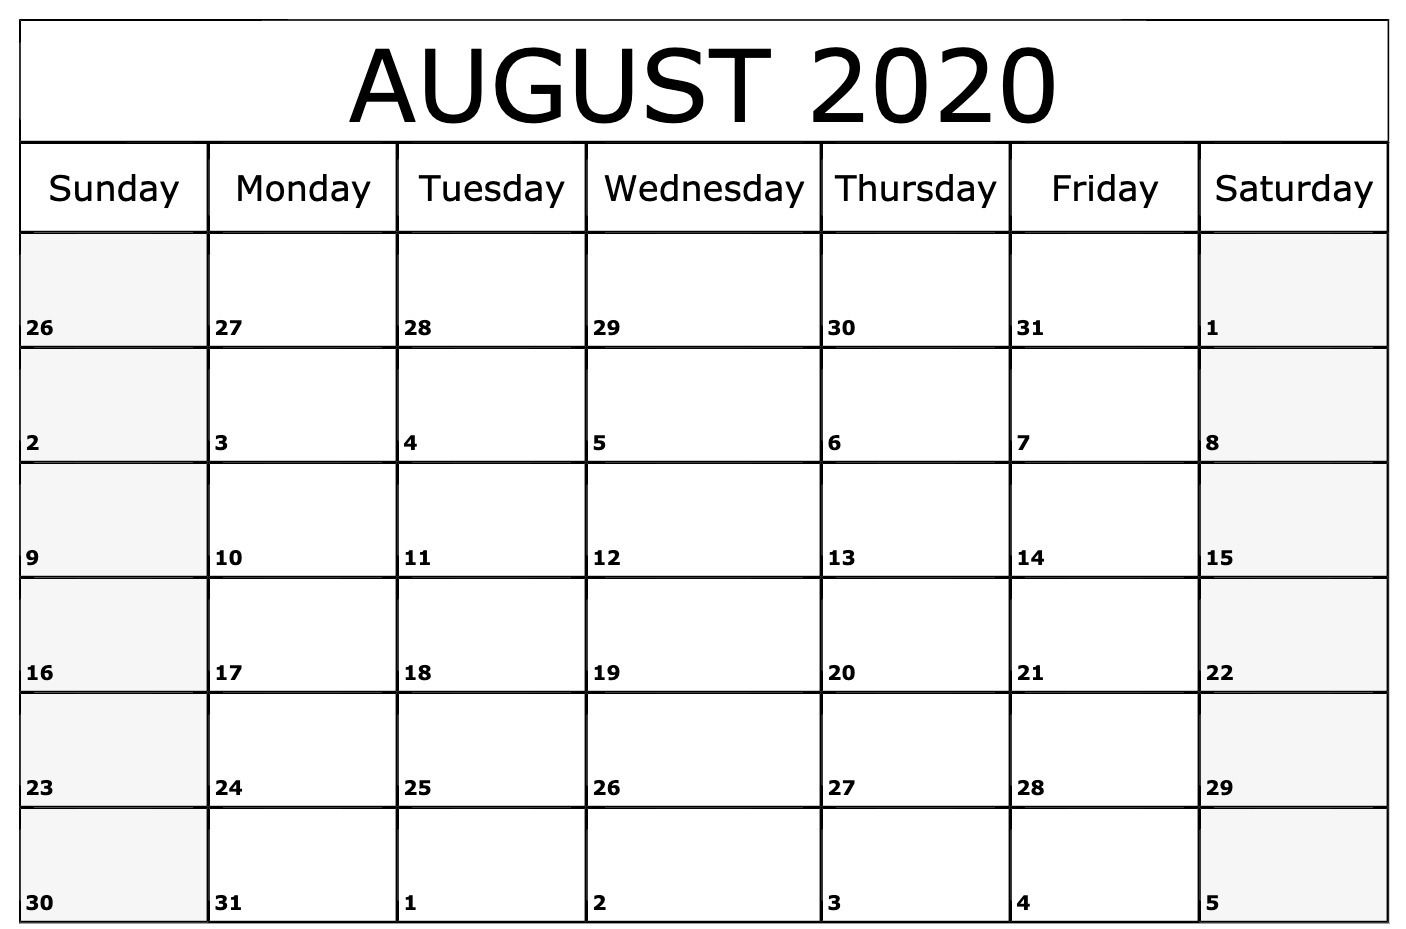 8. August 2020